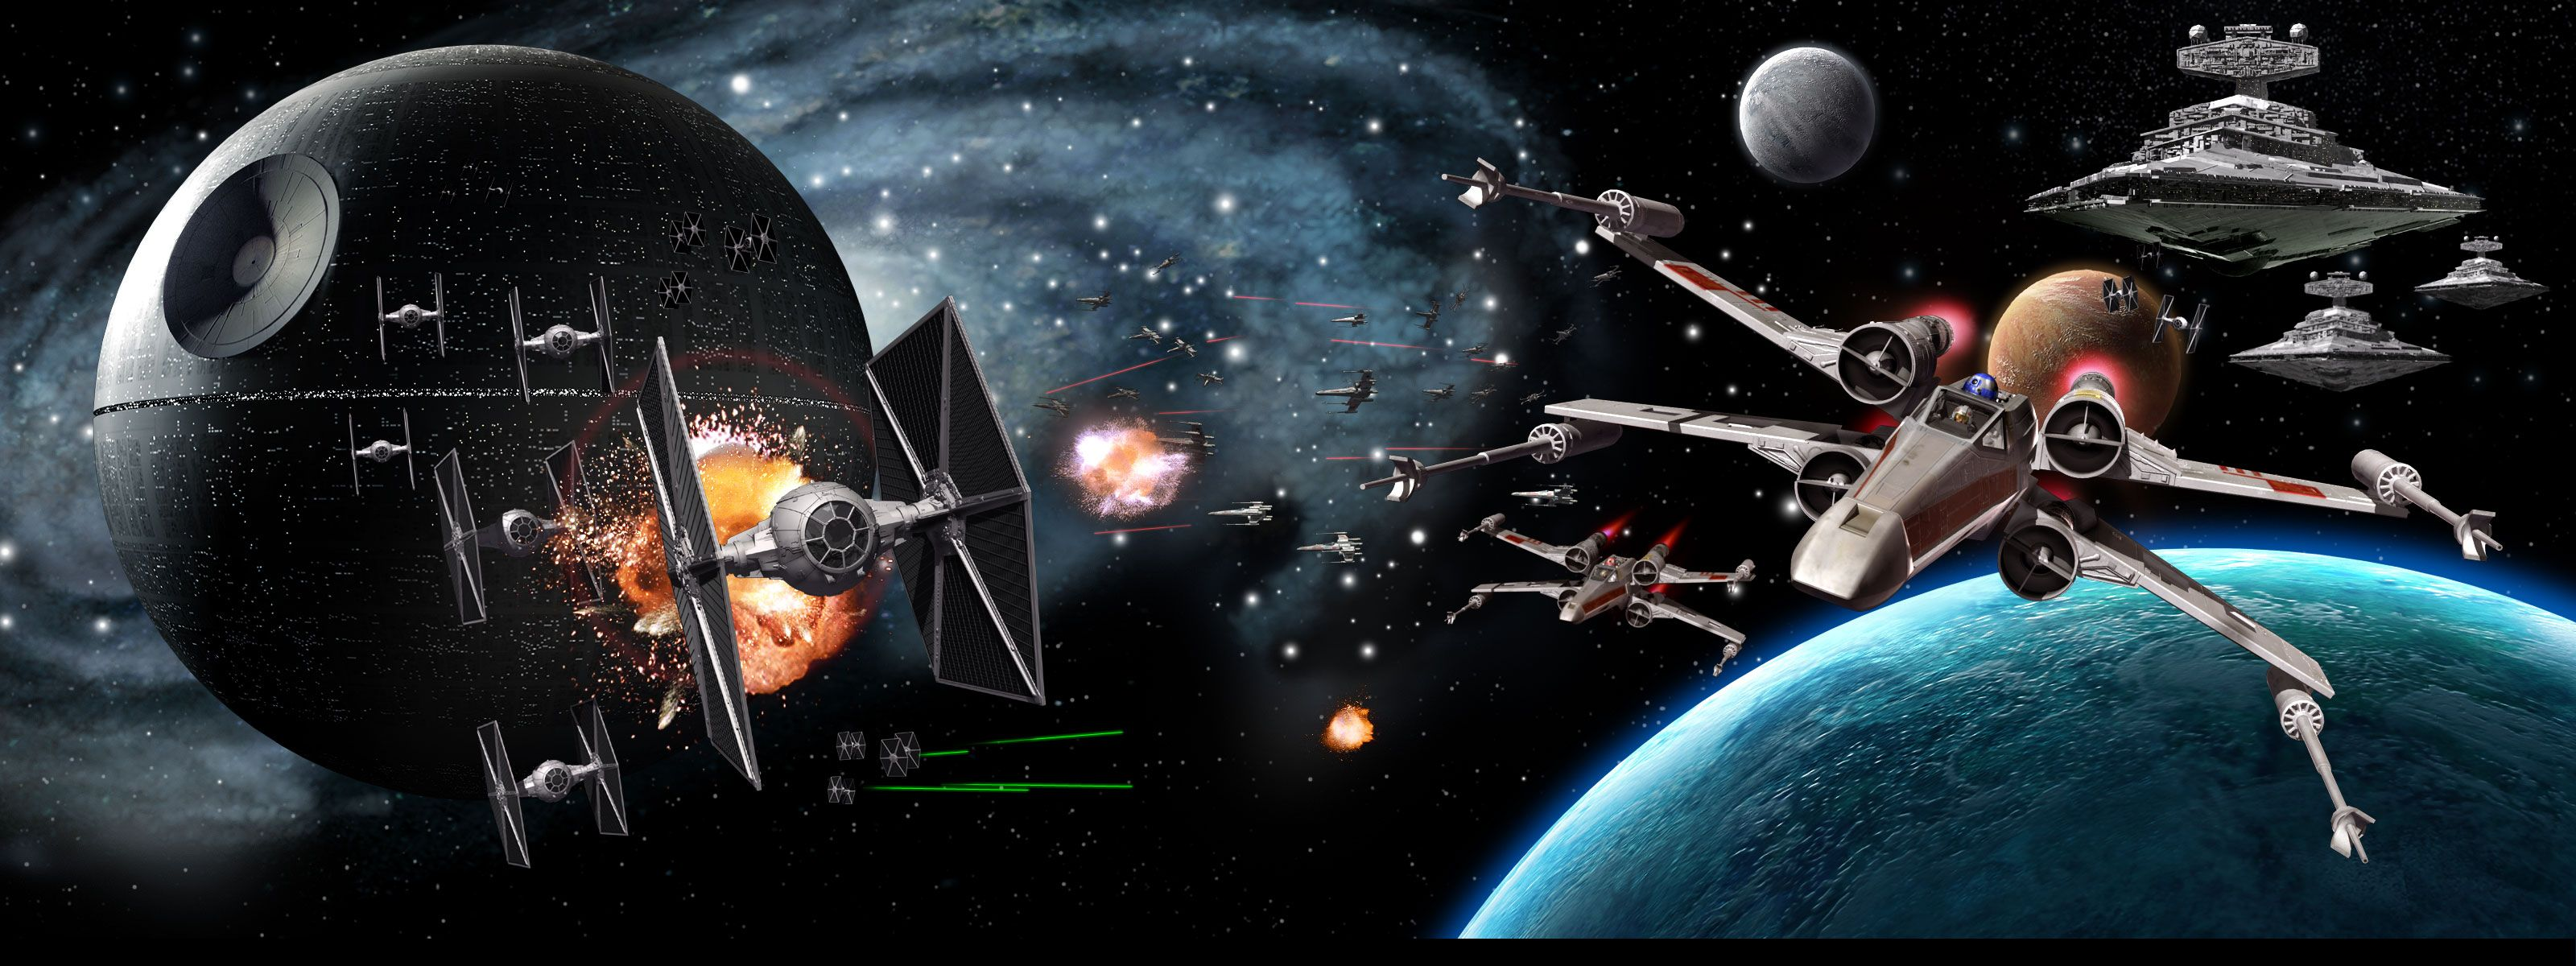 50] Star Wars Space Battle Wallpaper on WallpaperSafari 3200x1200